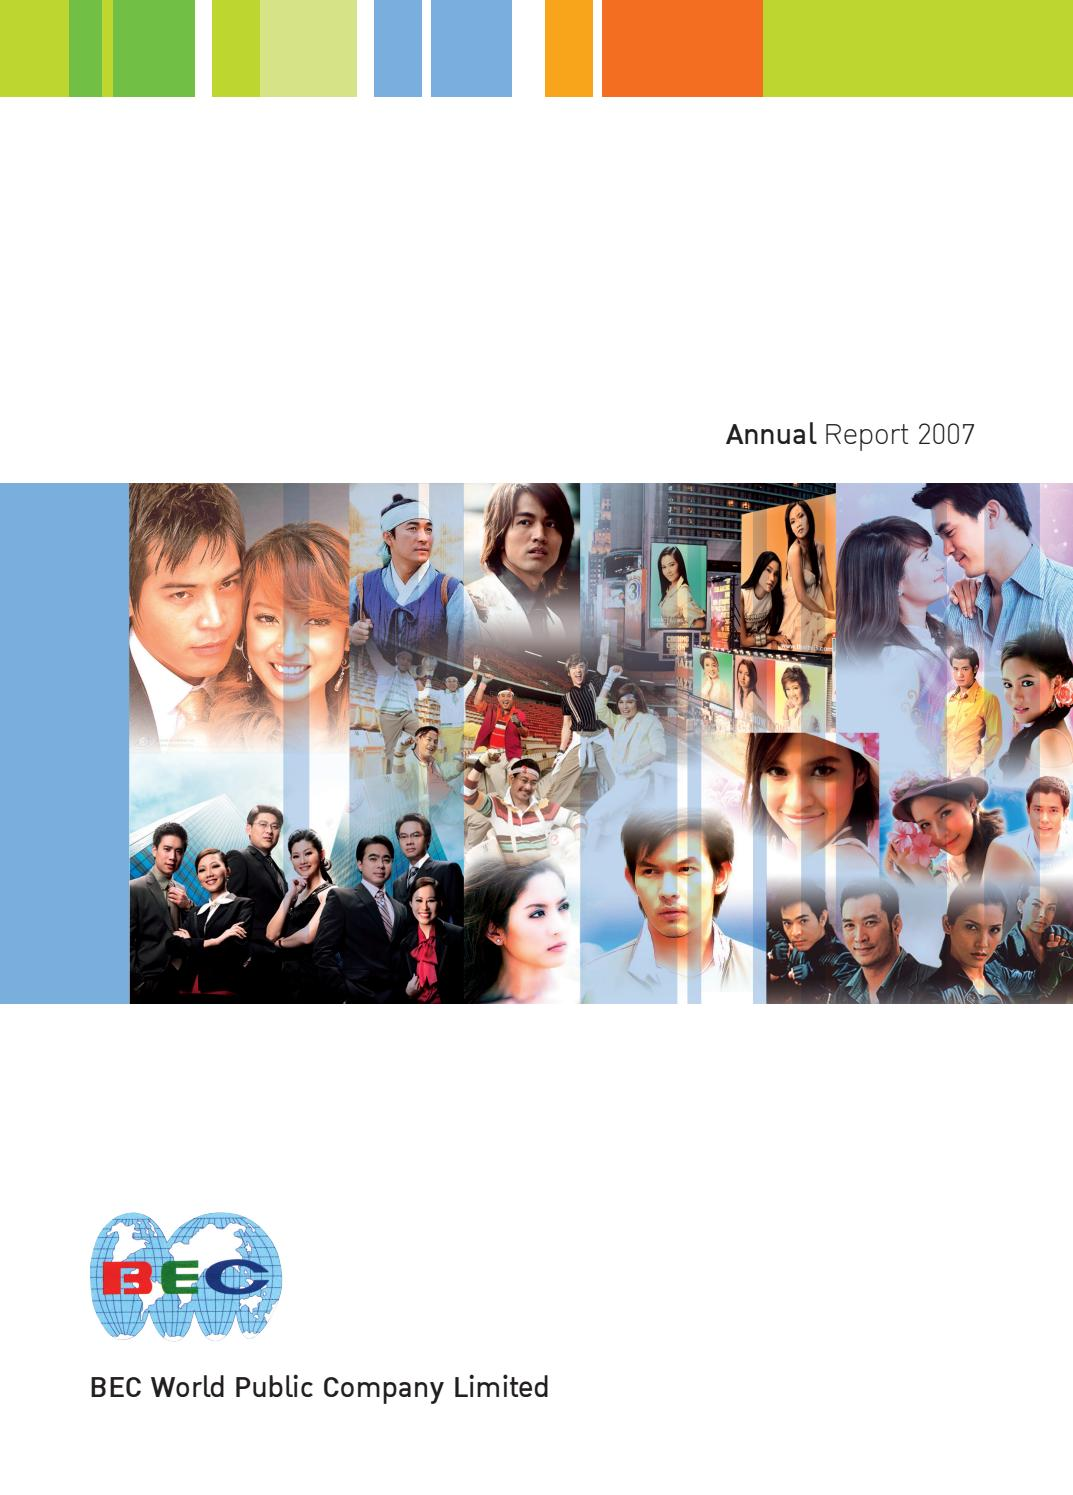 BEC: Annual Report 2007 by ar bec - issuu